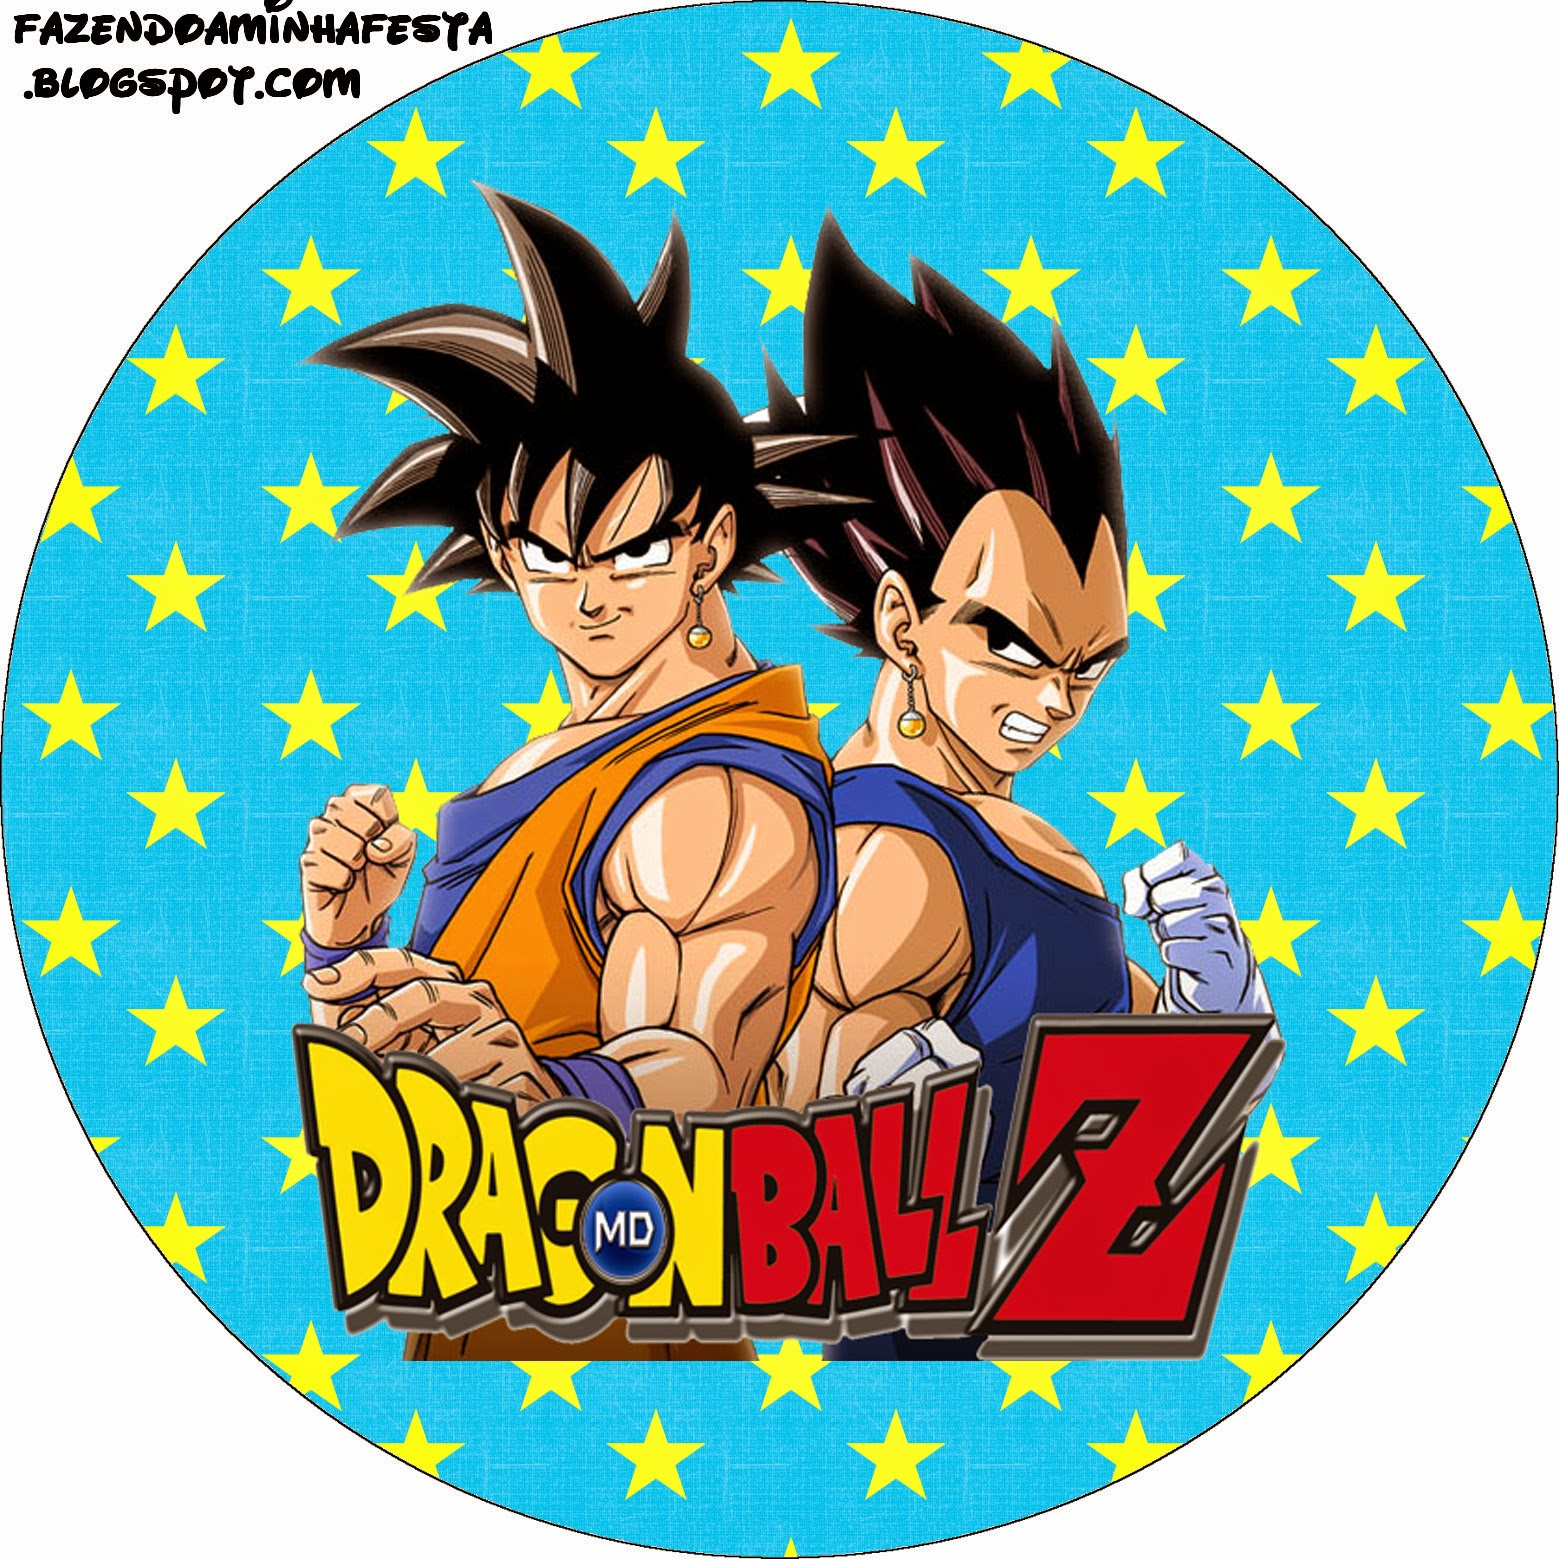 Dragon ball z valentine cards